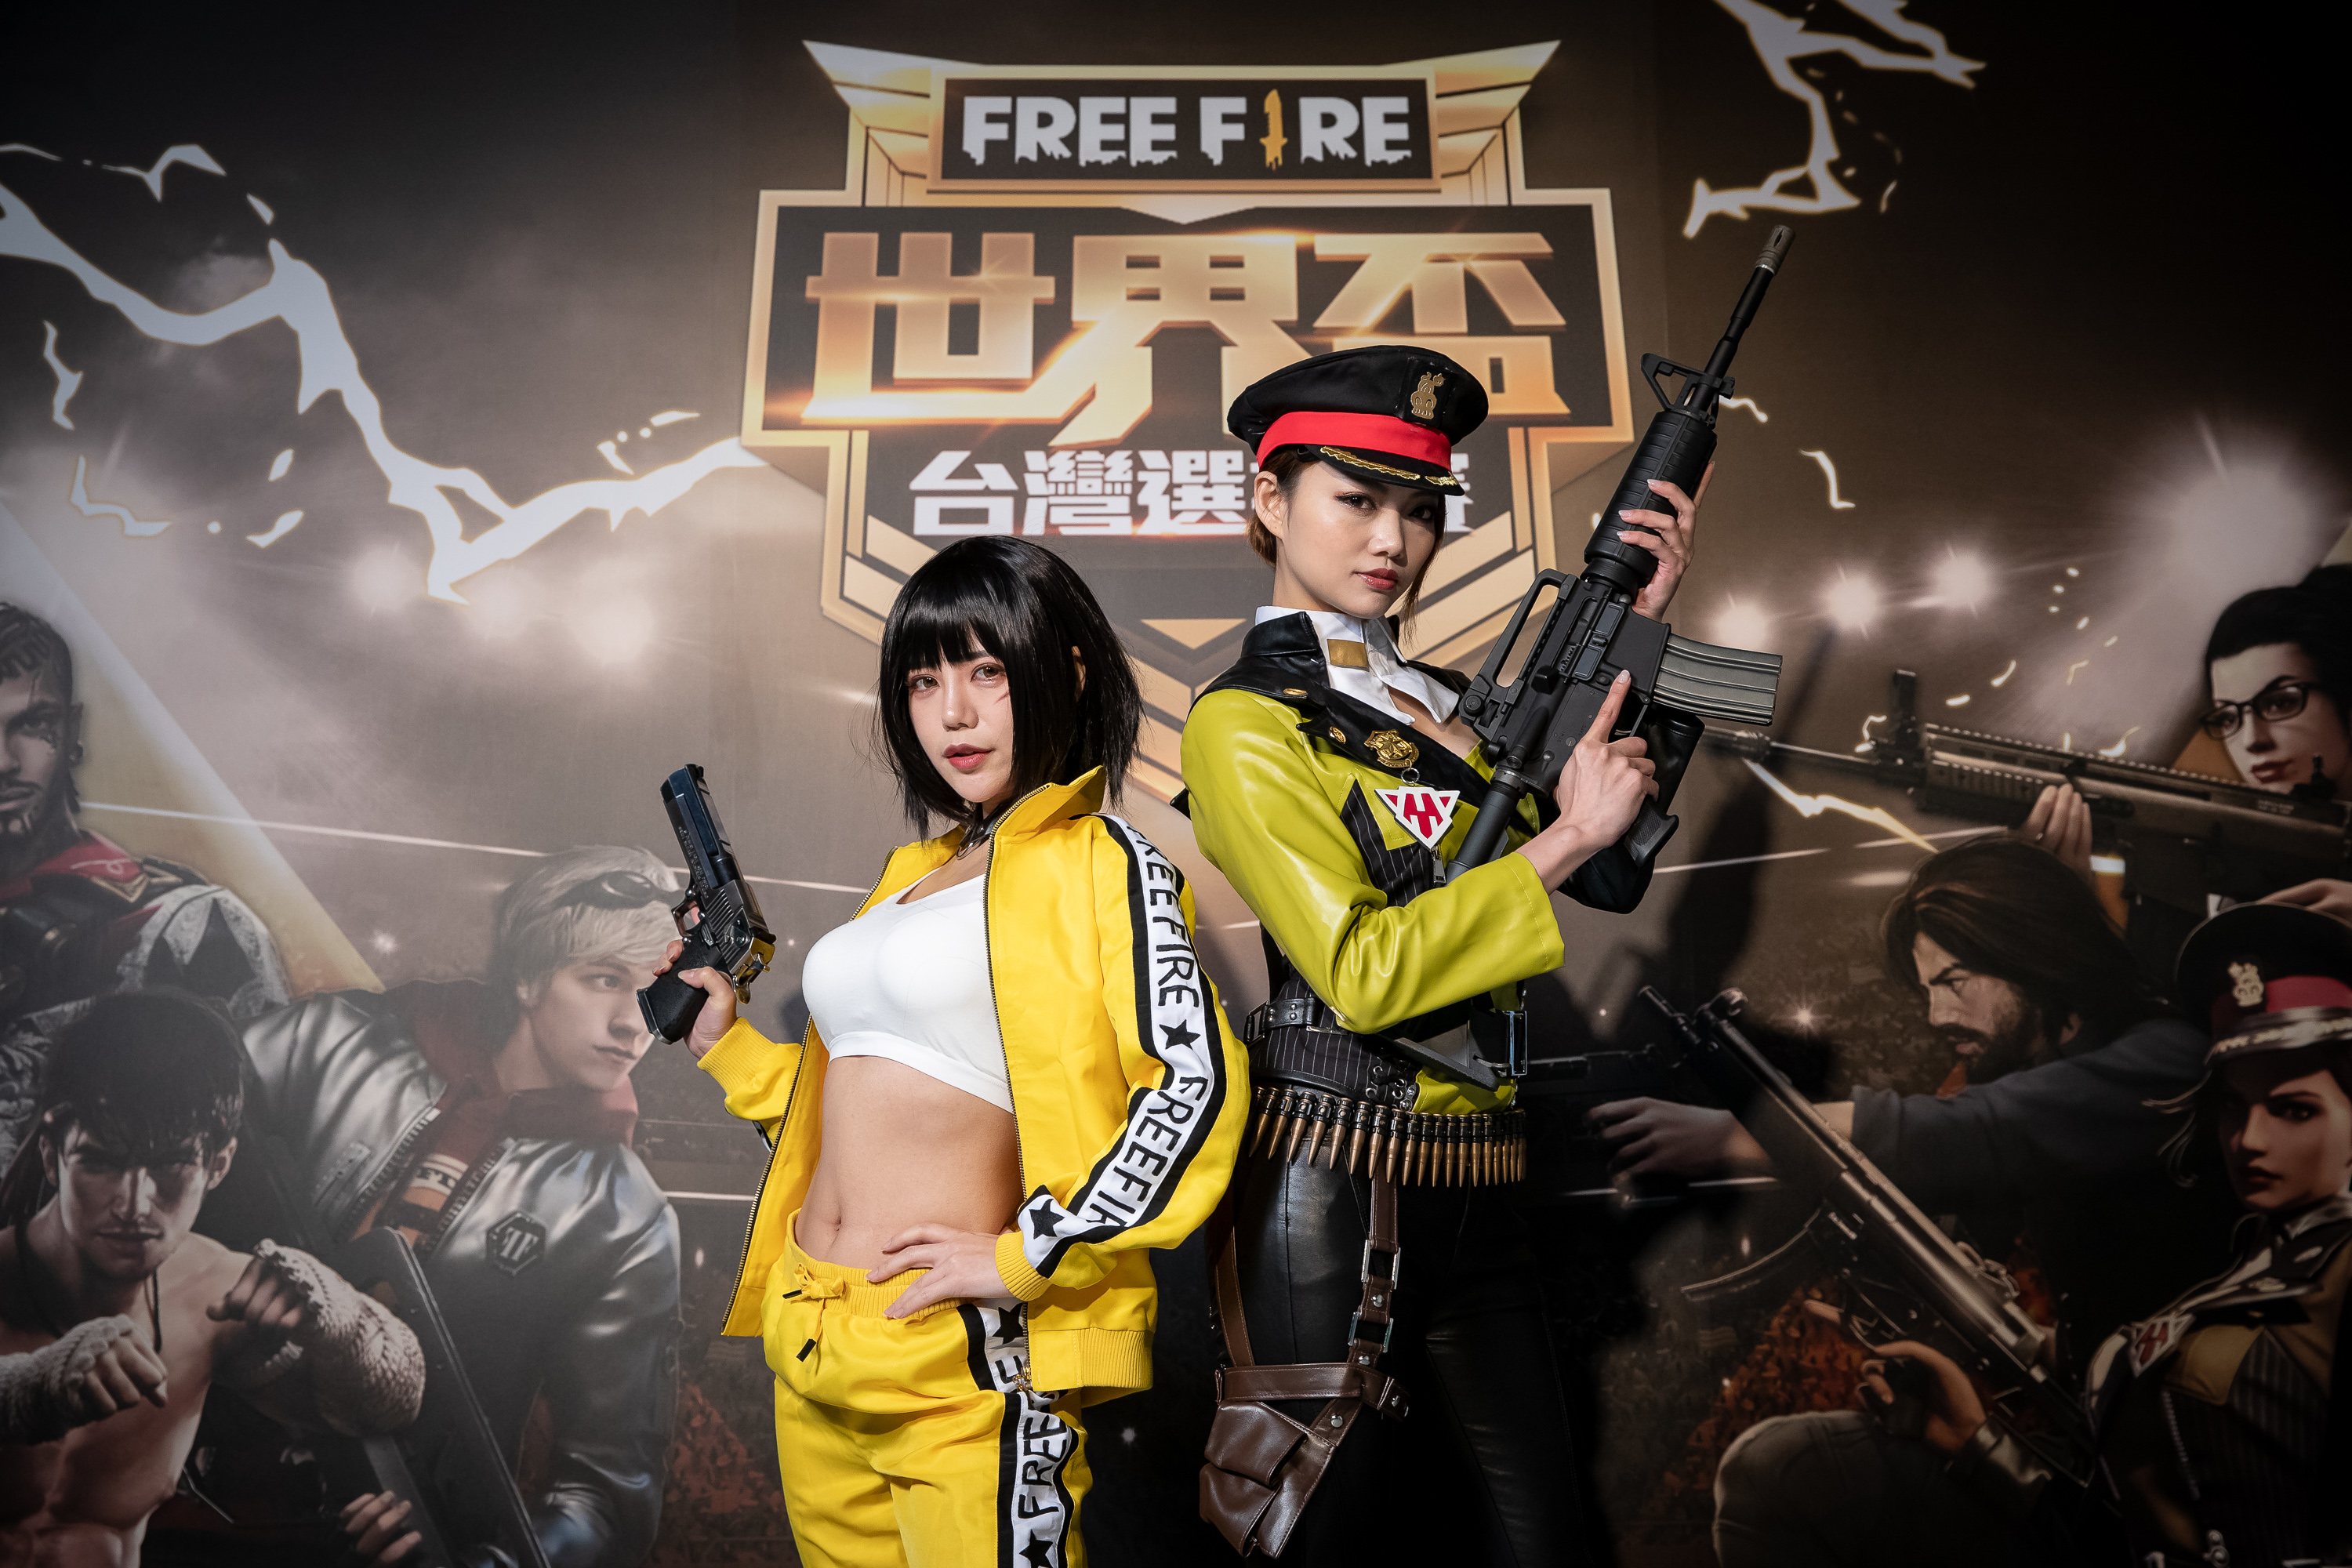 #6  Garena Free Fire Wallpaper 2019 - 2560 × 1440 (QHD, WQHD, Quad HD, 1440p) 7